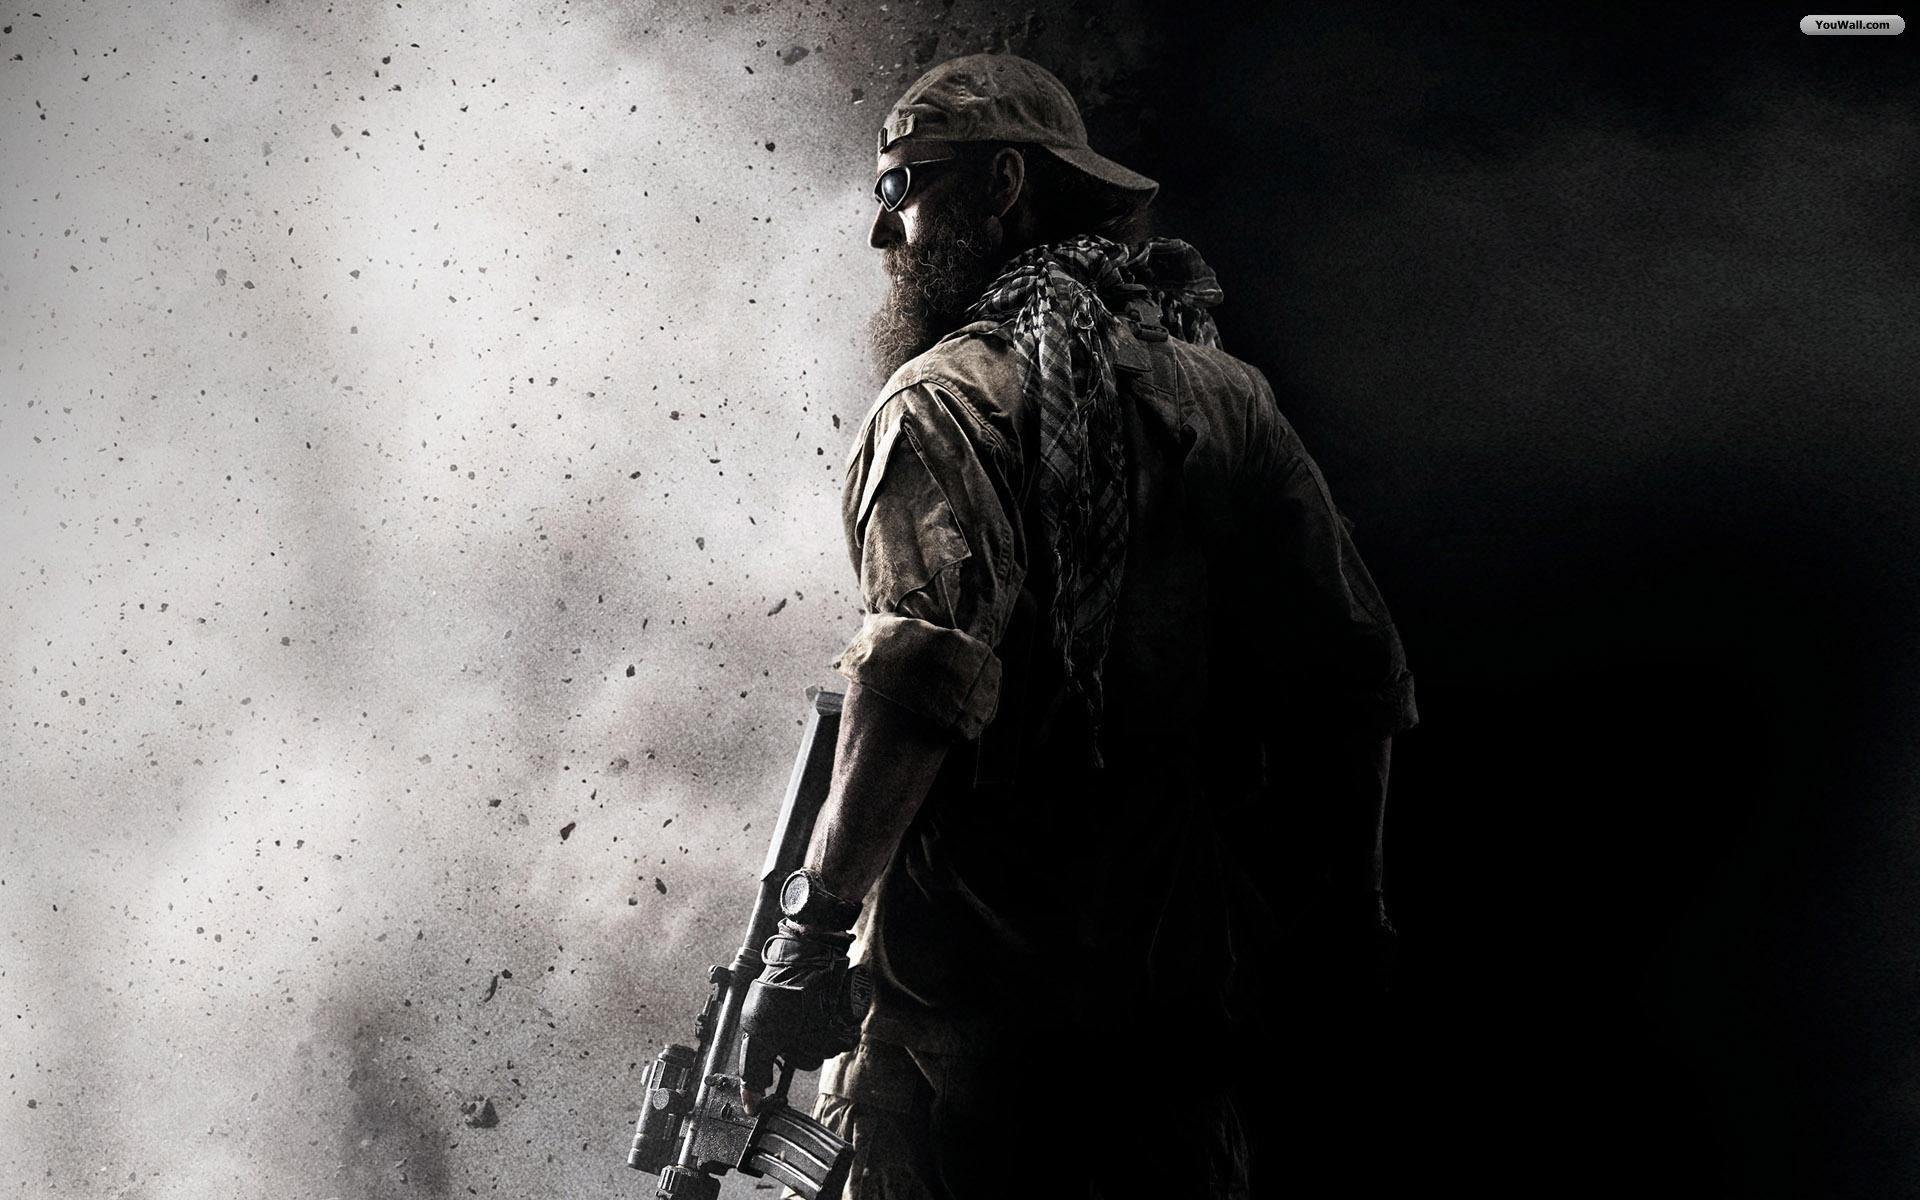 War Game   Soldier Wallpaper   wallpaperwallpapersfree wallpaper 1920x1200